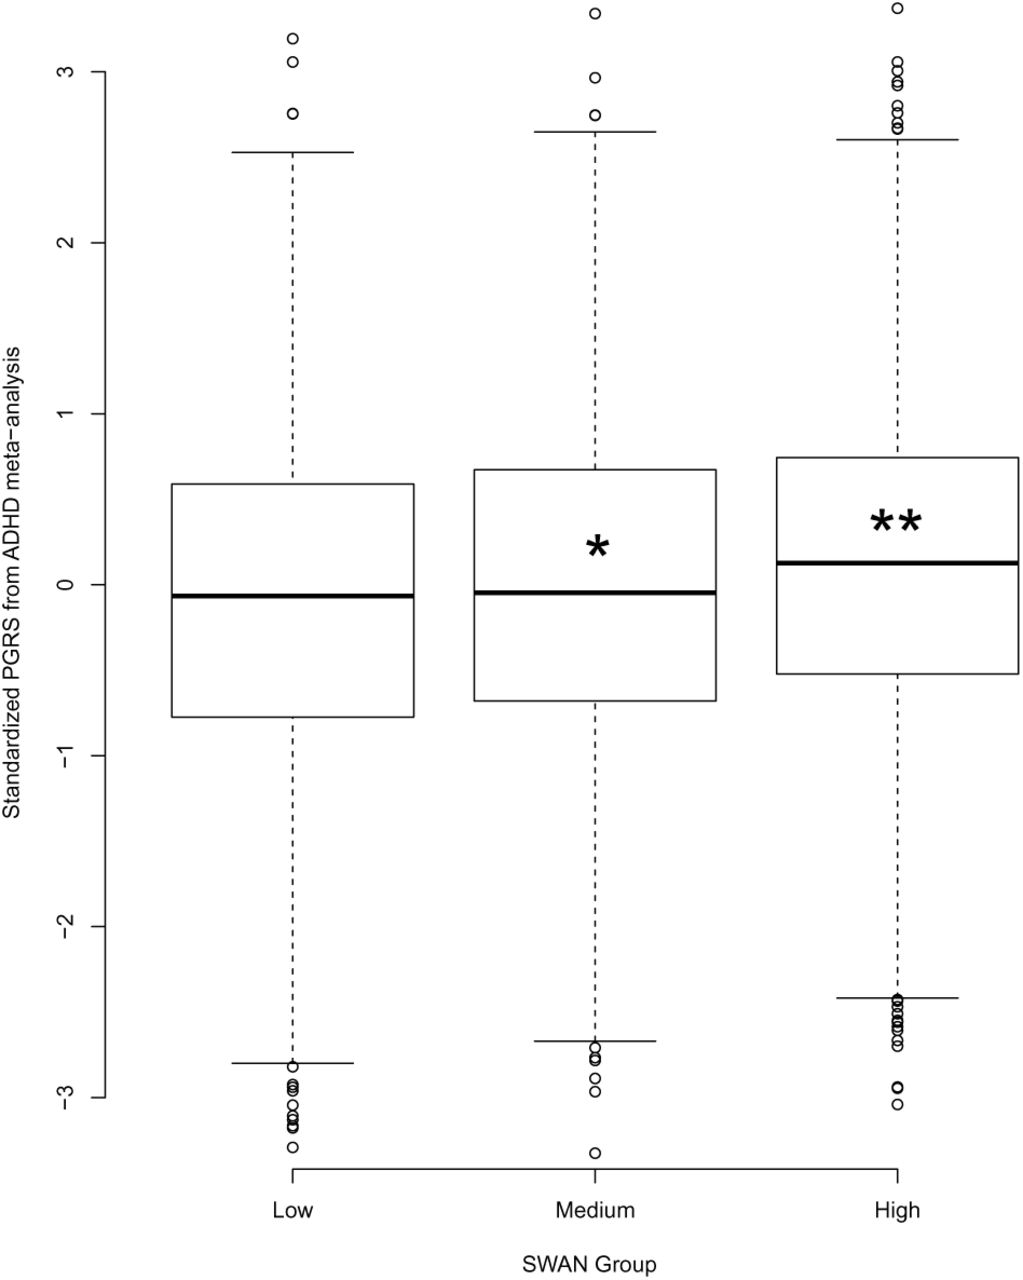 Utility of Attention-Deficit/Hyperactivity Disorder Trait Measure in